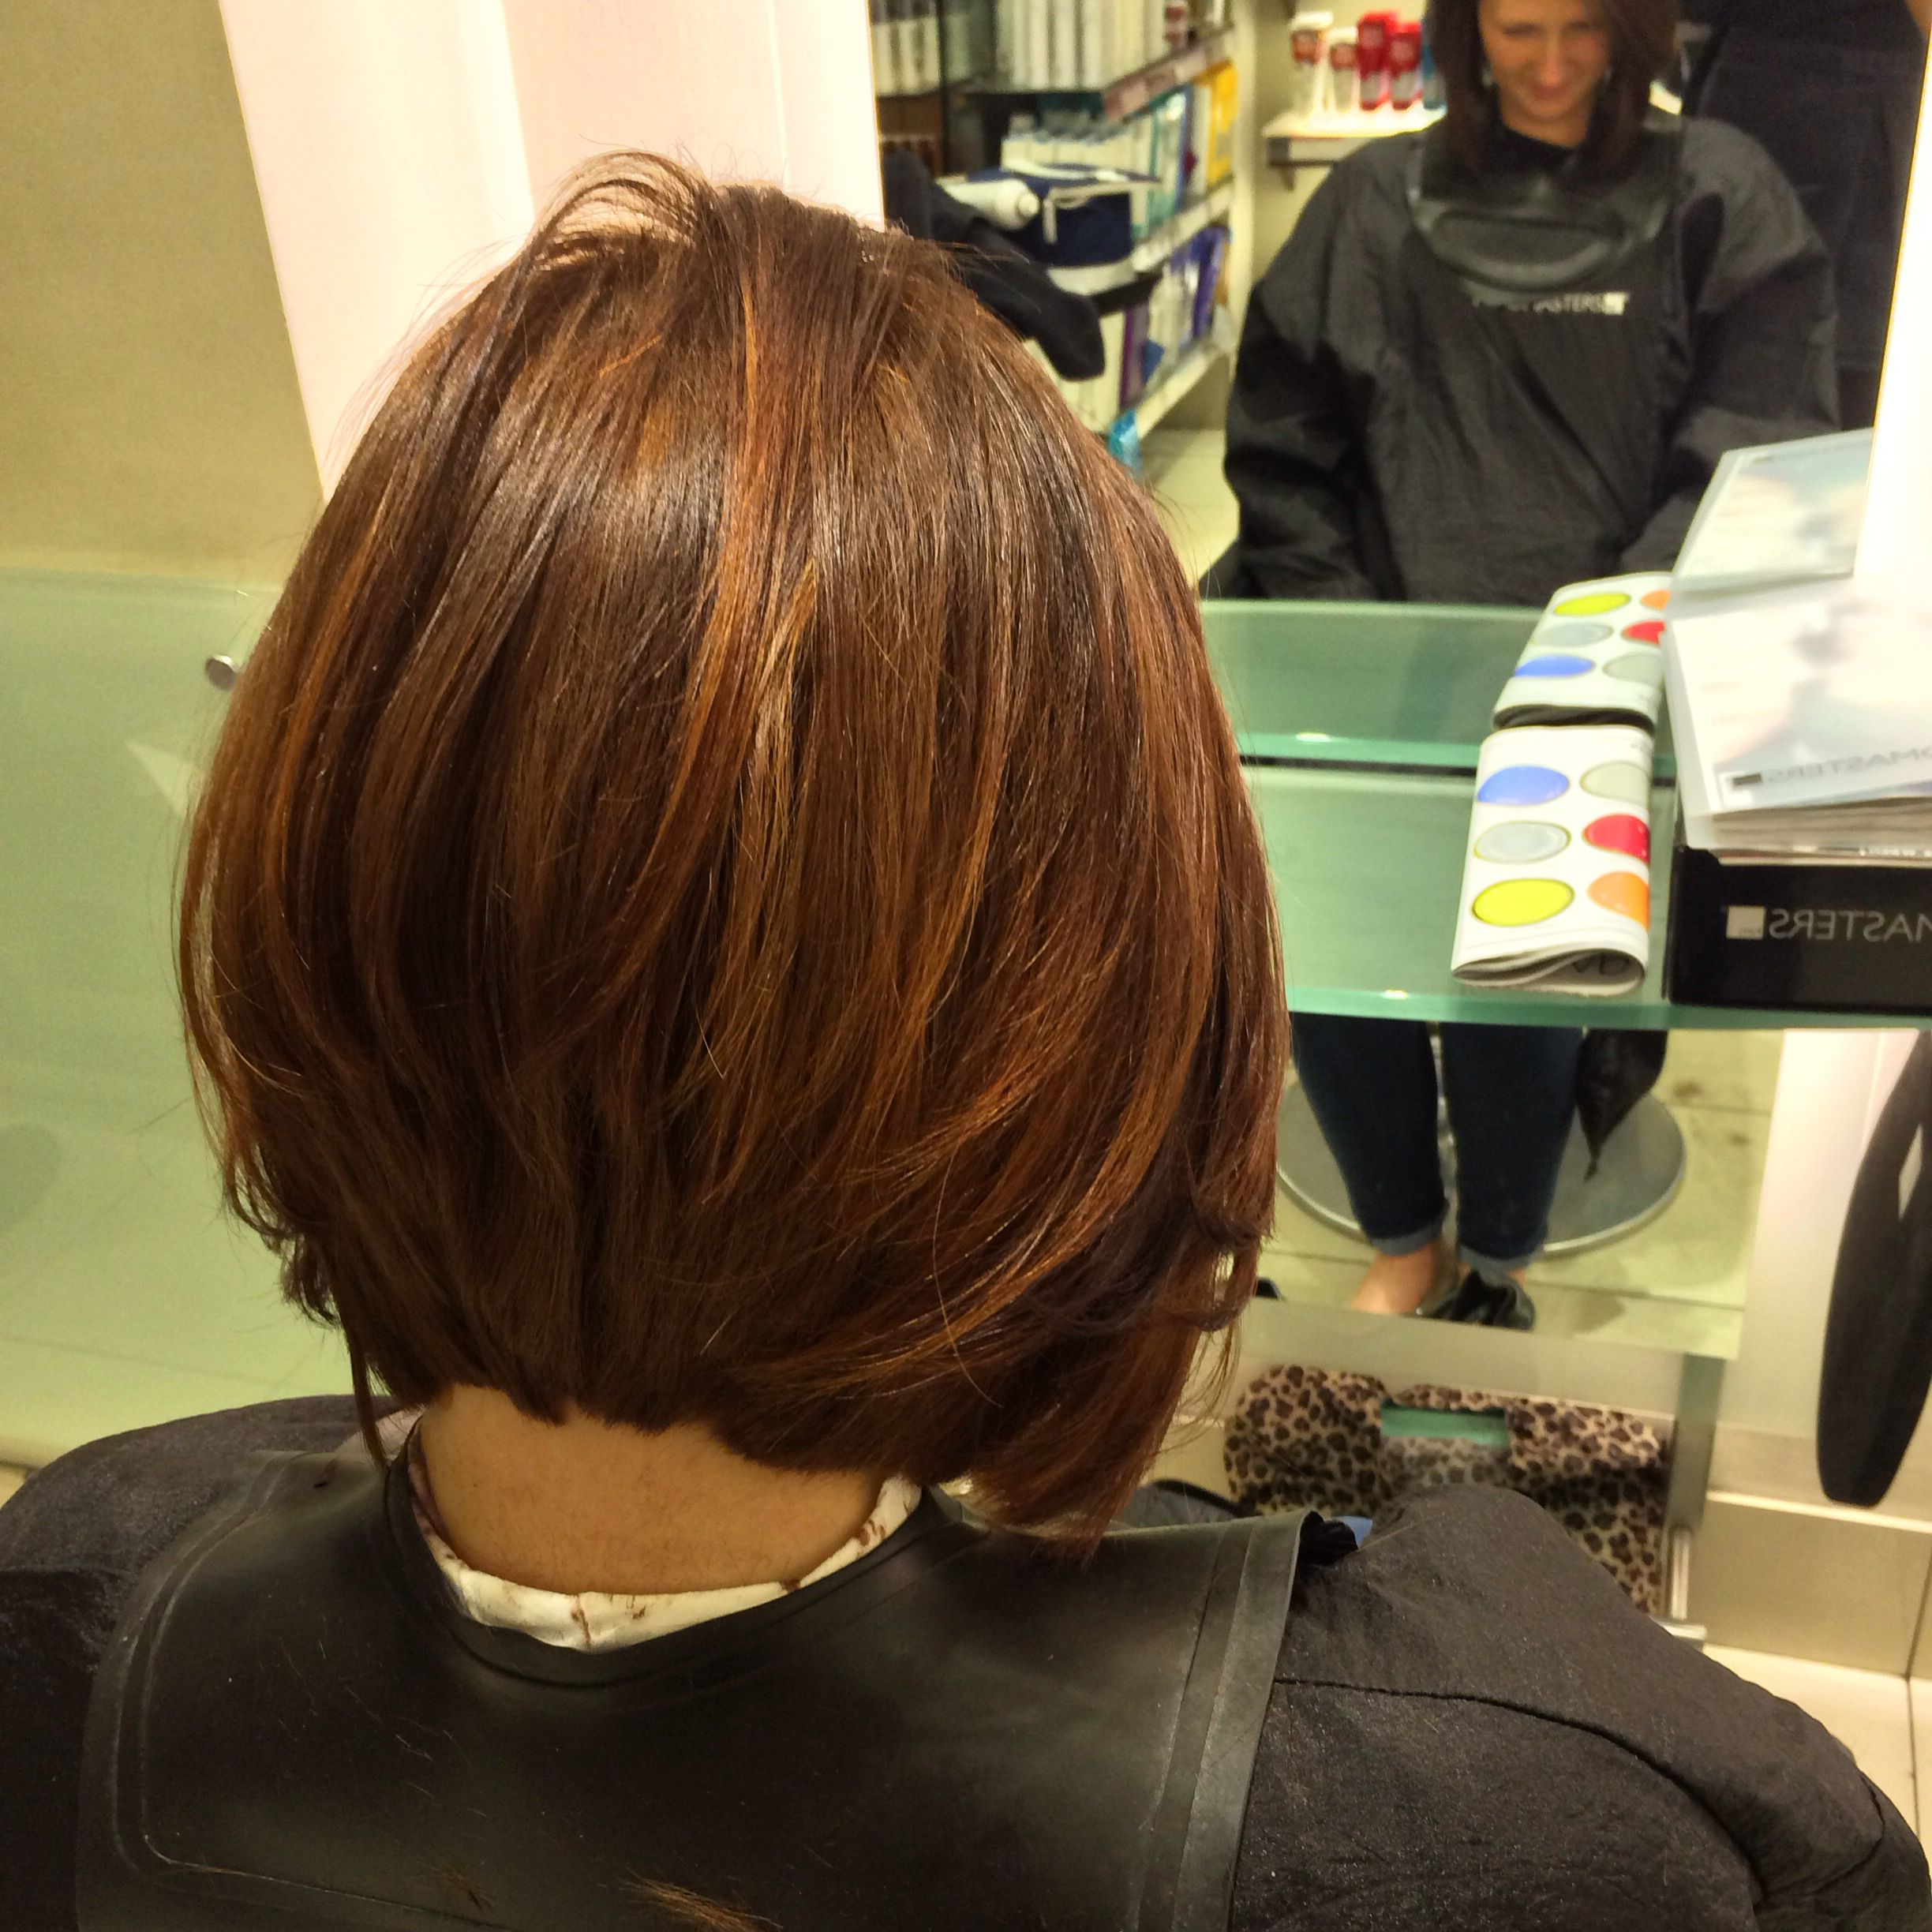 Pin On Hair Ideas Regarding Well Known Chestnut Brown Choppy Lob Hairstyles (View 16 of 20)